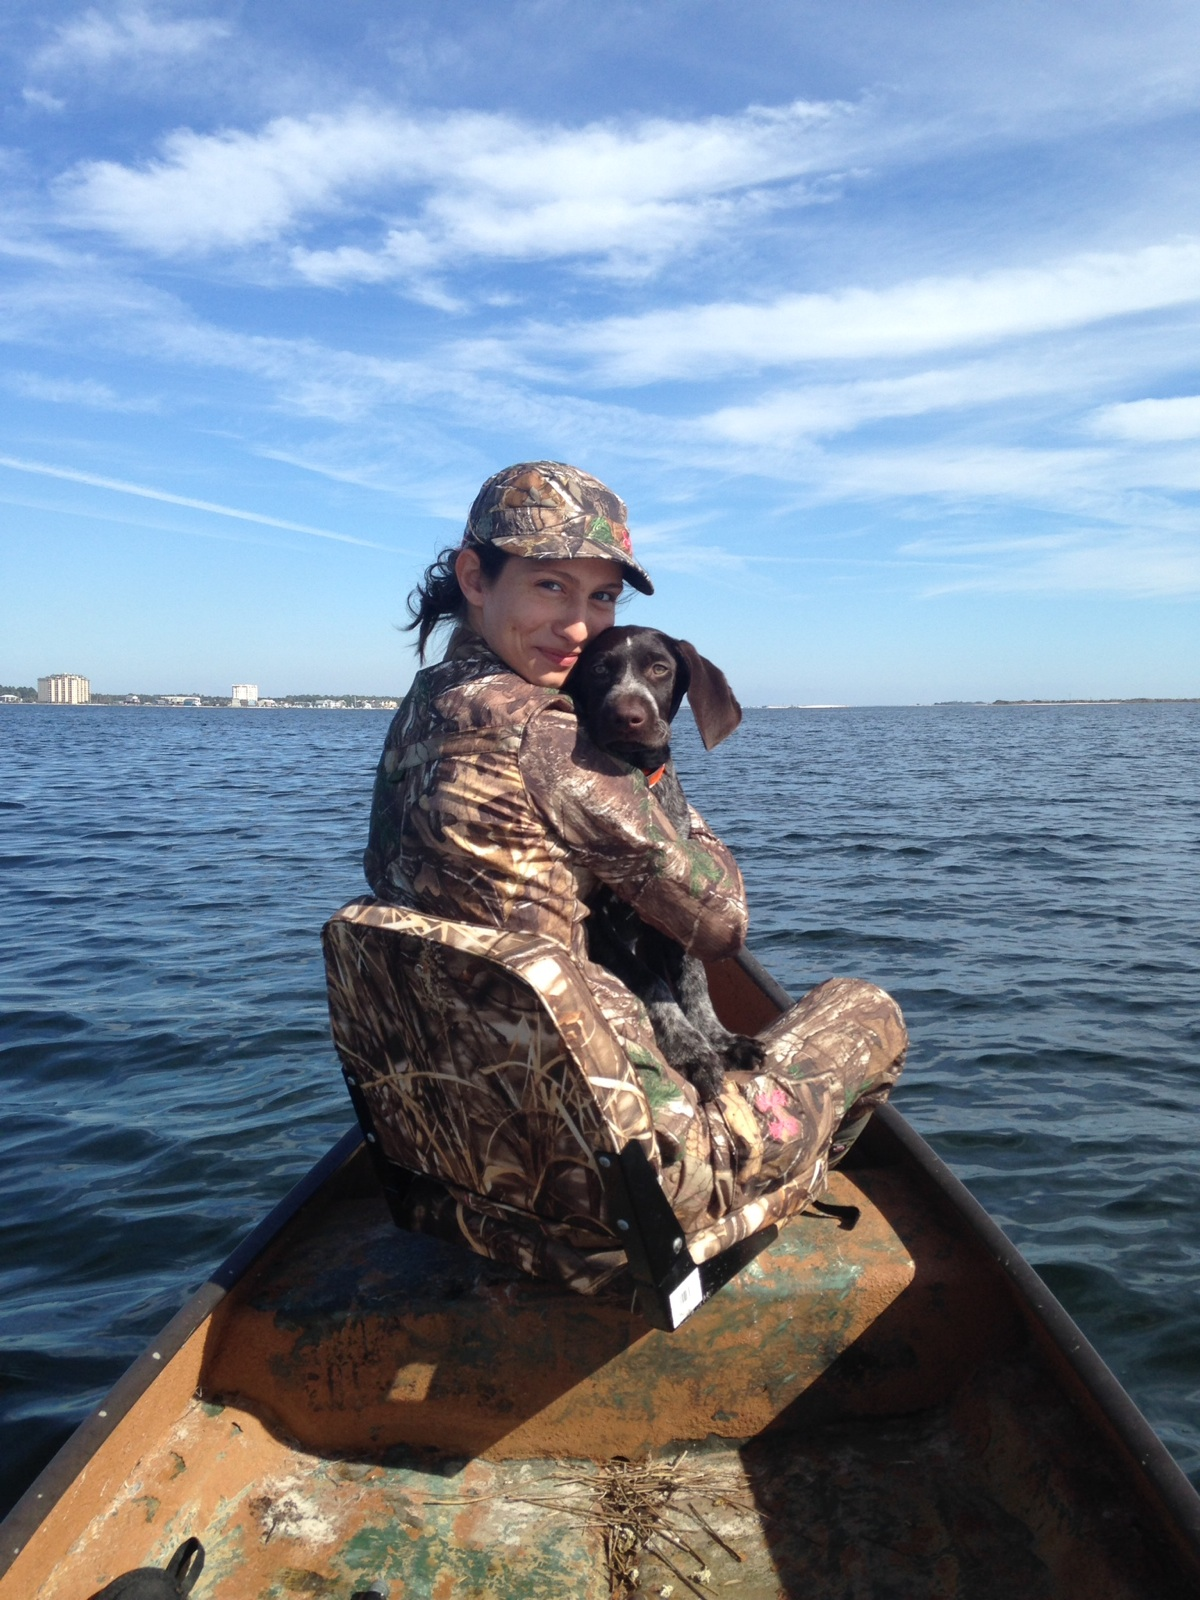 Able - Owned by Annette Martin. Duck hunting on the gulf.